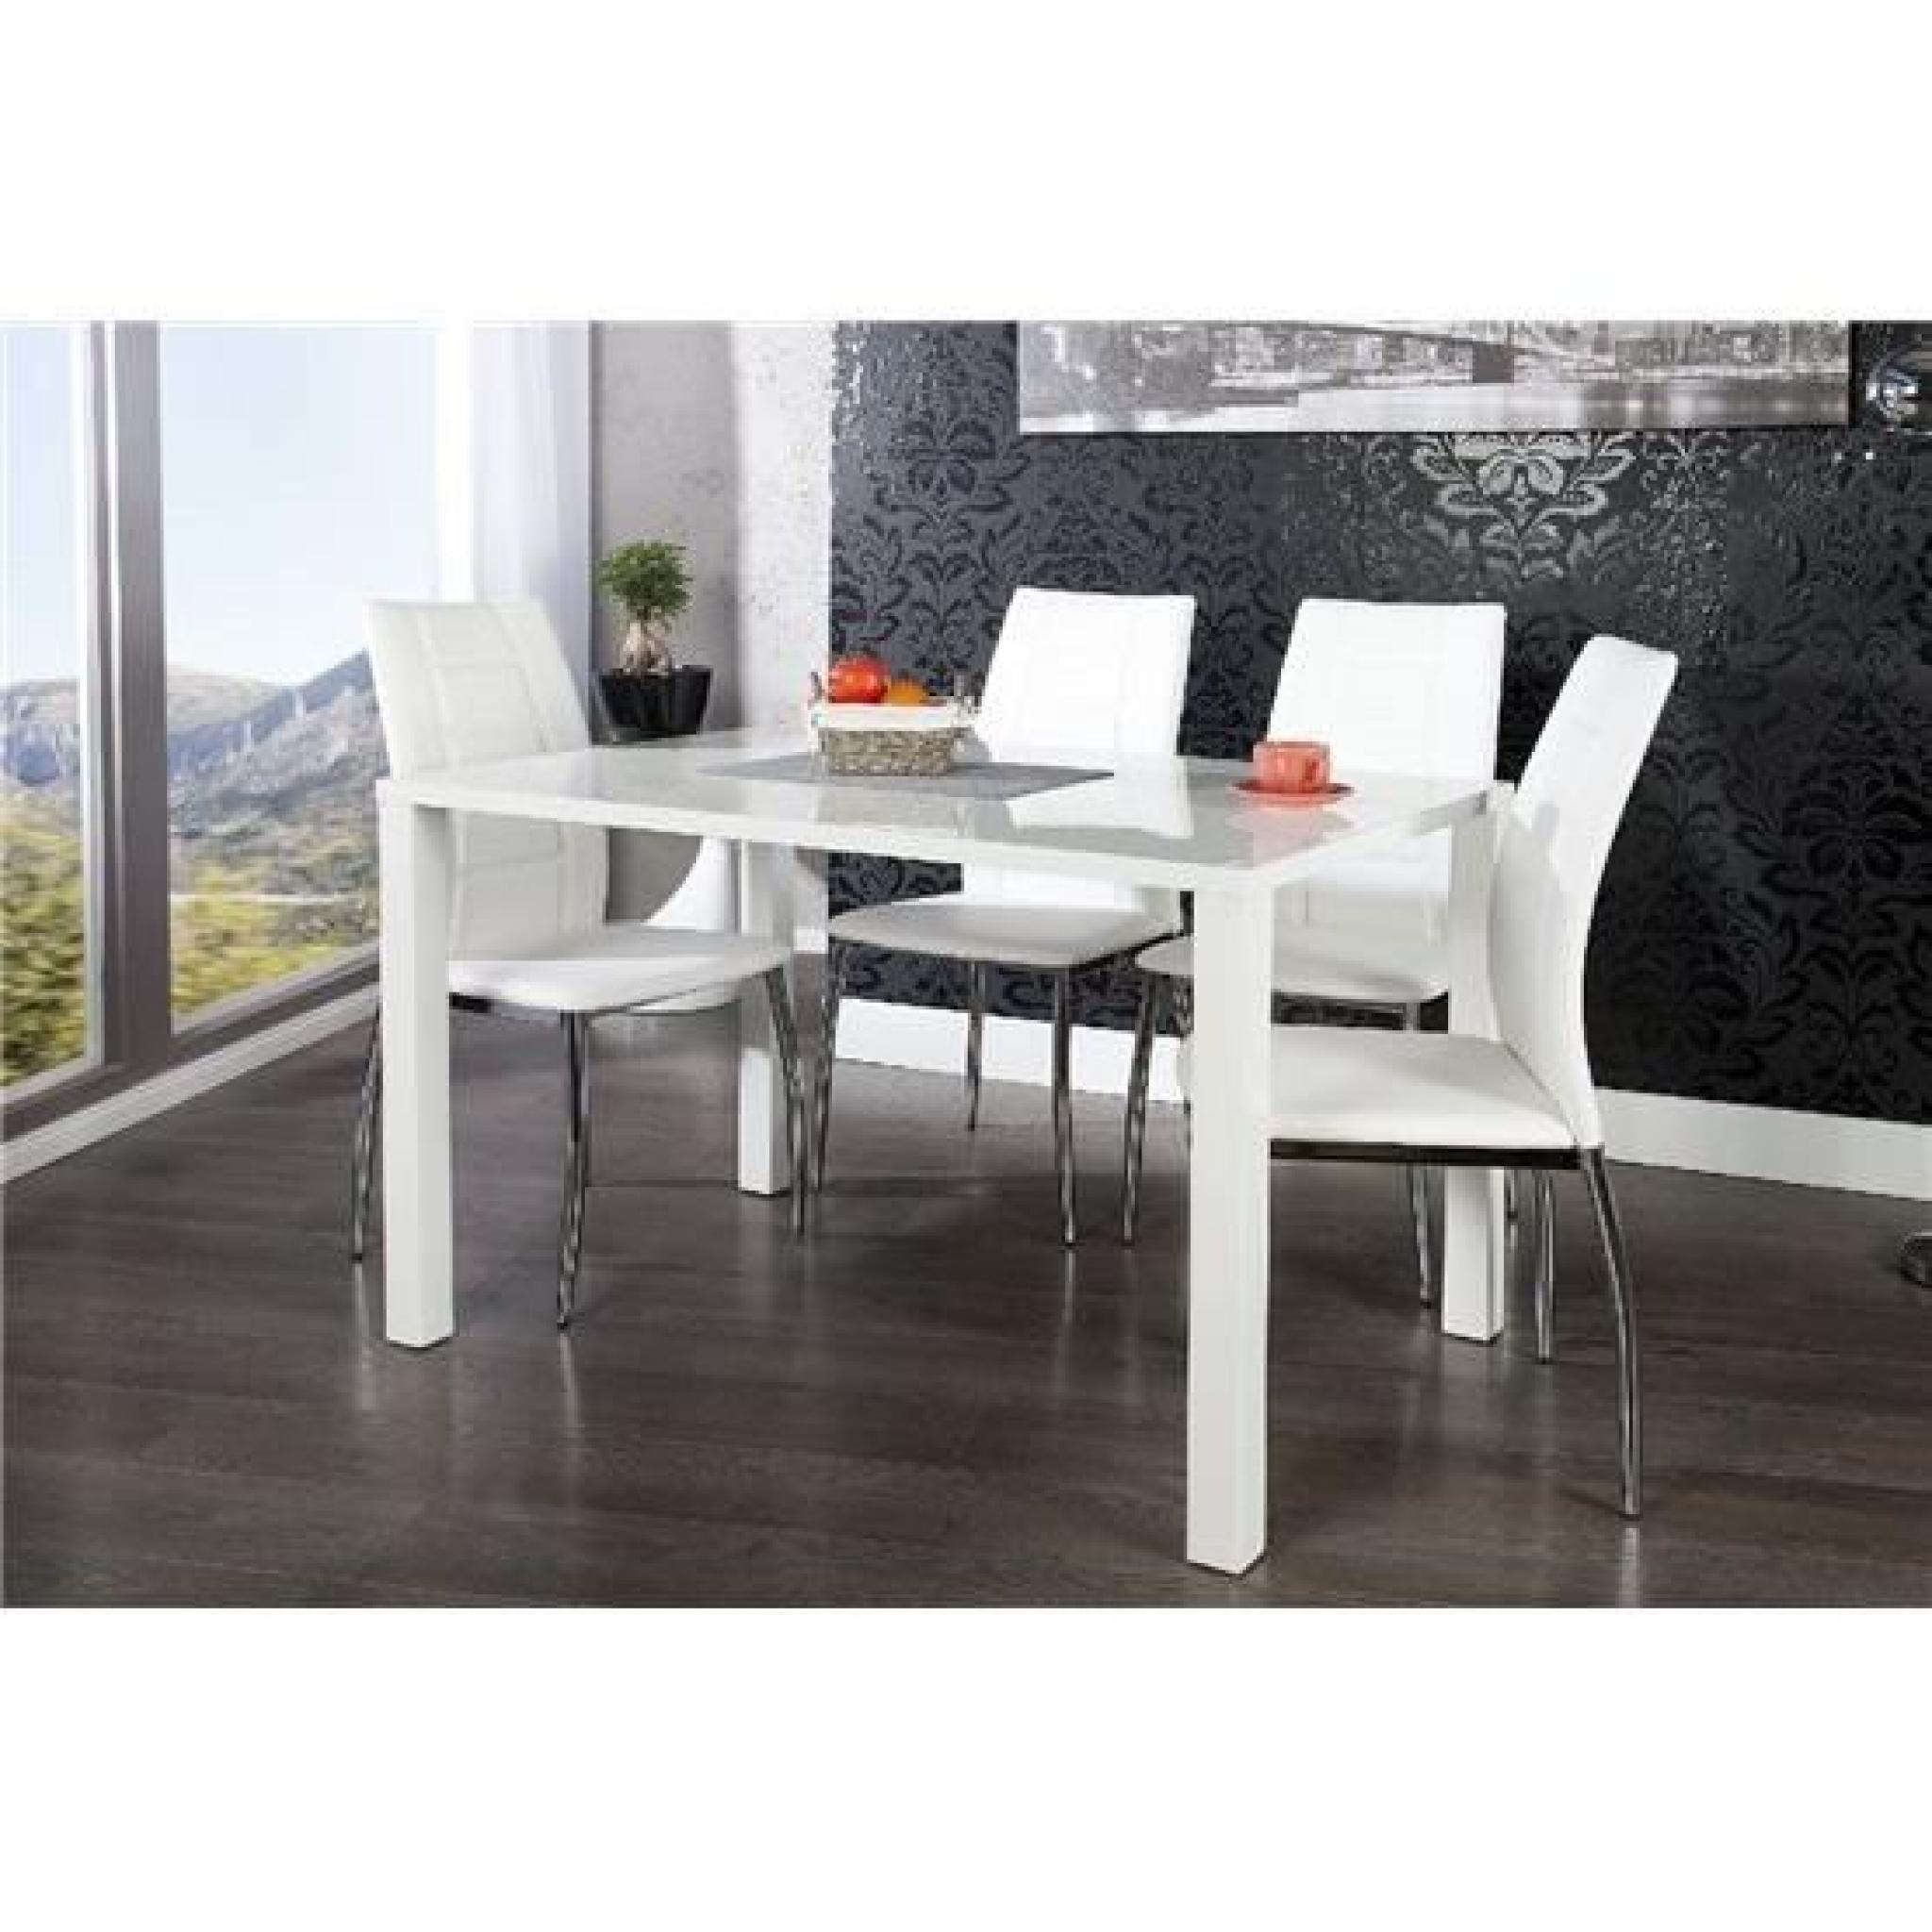 Table manger design lasya blanc 120x80 achat vente for Table 120x80